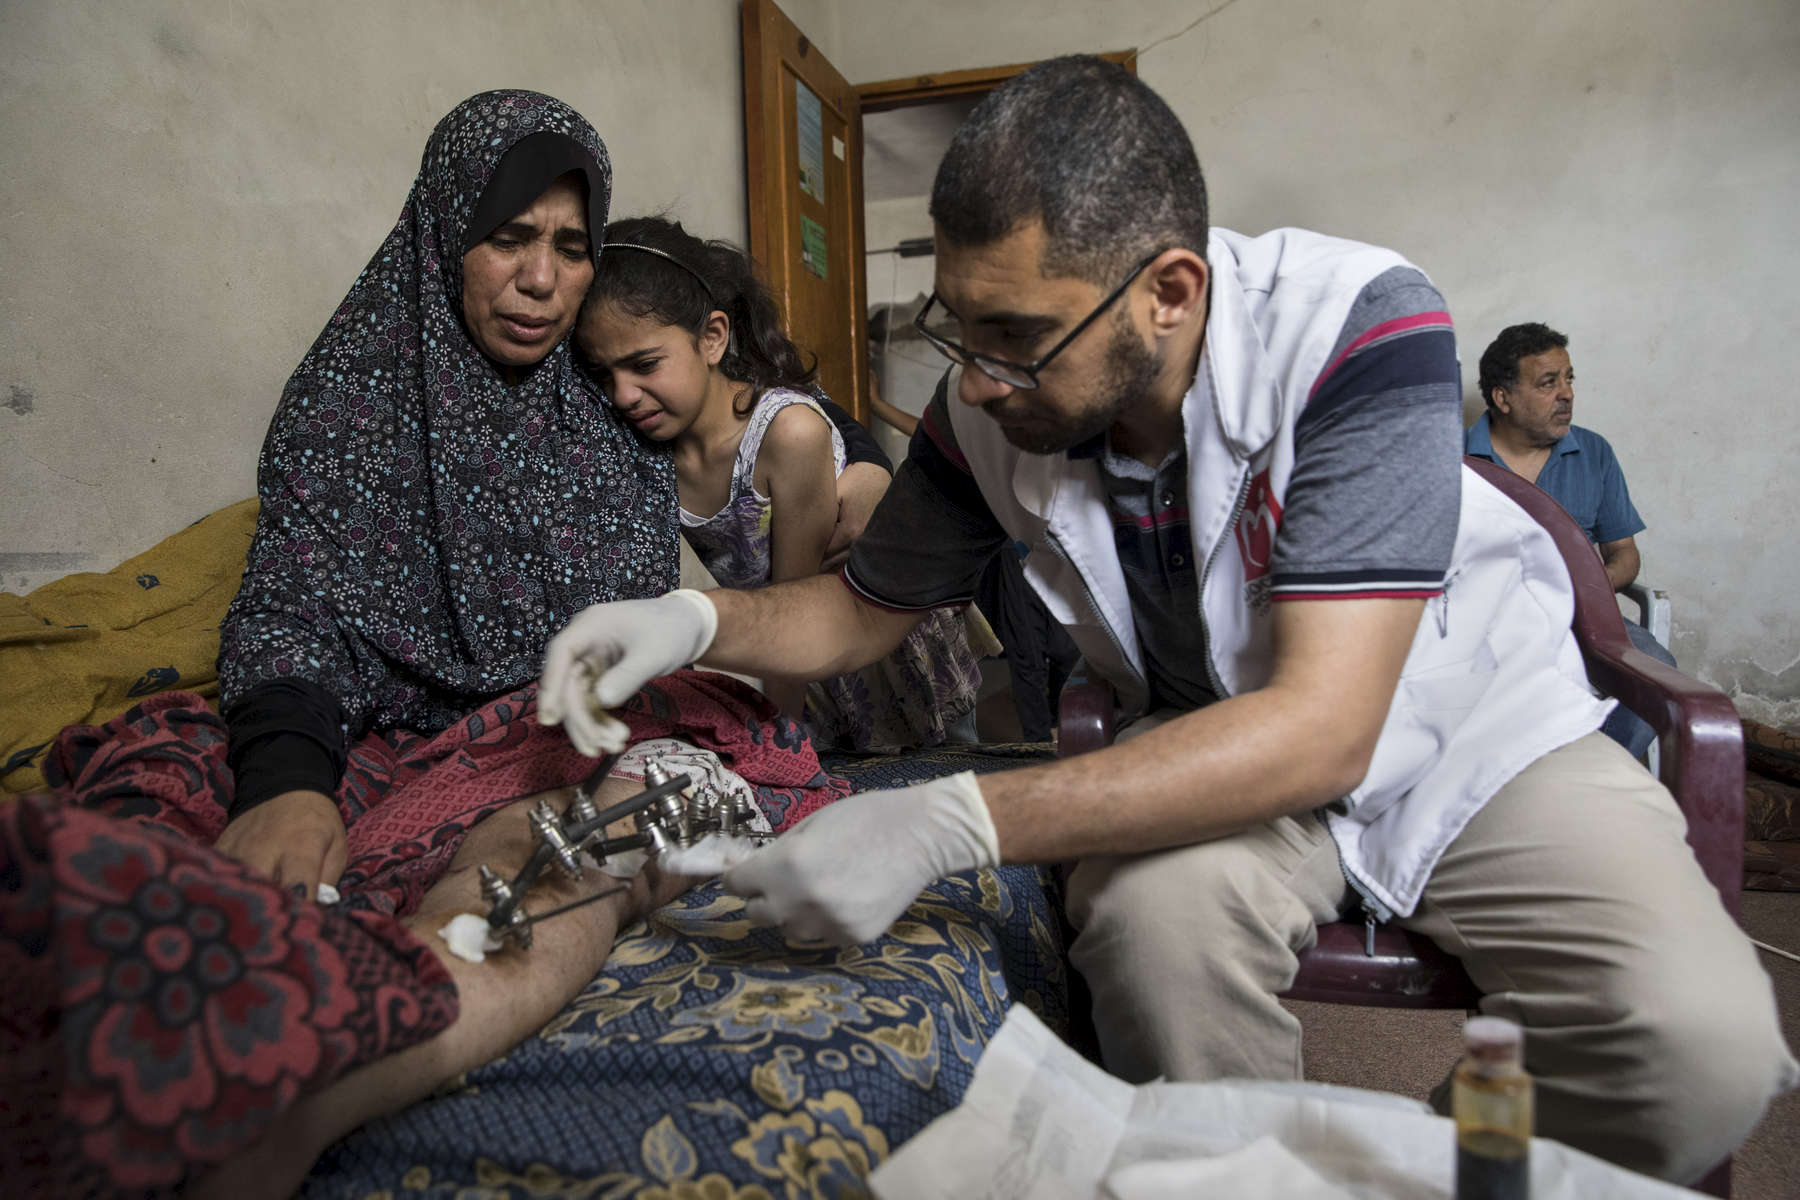 GAZA STRIP- MAY 22,2018 : Kefah Al-Ajrami, 47, holds her daughter Zamzam Al-Ajrami, 9 years while Dr. Naser Al-Sharif from the Turkish ngo Doctors Worldwide cleans and changes the bandages on her leg on May 22,2018 in Gaza city, Gaza strip. Kefah is a mother of seven, she was shot in her left leg with an exploding bullet causing extensive injury to her leg. She went to the protests on March 30th  along with her children and husband but was nowhere near fence.  The Israeli military (IDF) started using new weaponry, explosive bullets that shatter bones, tissue, destroying veins and arteries, the aim is to create a handicapped community, especially amongst the young male population.  Everyone is well aware that Gaza's two million inhabitants are trapped in a cycle of violence and poverty, created by policies and political decisions on both sides. The problems and complications affecting Gaza today are overwhelming. The world, seemingly accustomed to the suffering of the Gazan people turns a blind eye. (Photo by Paula Bronstein )